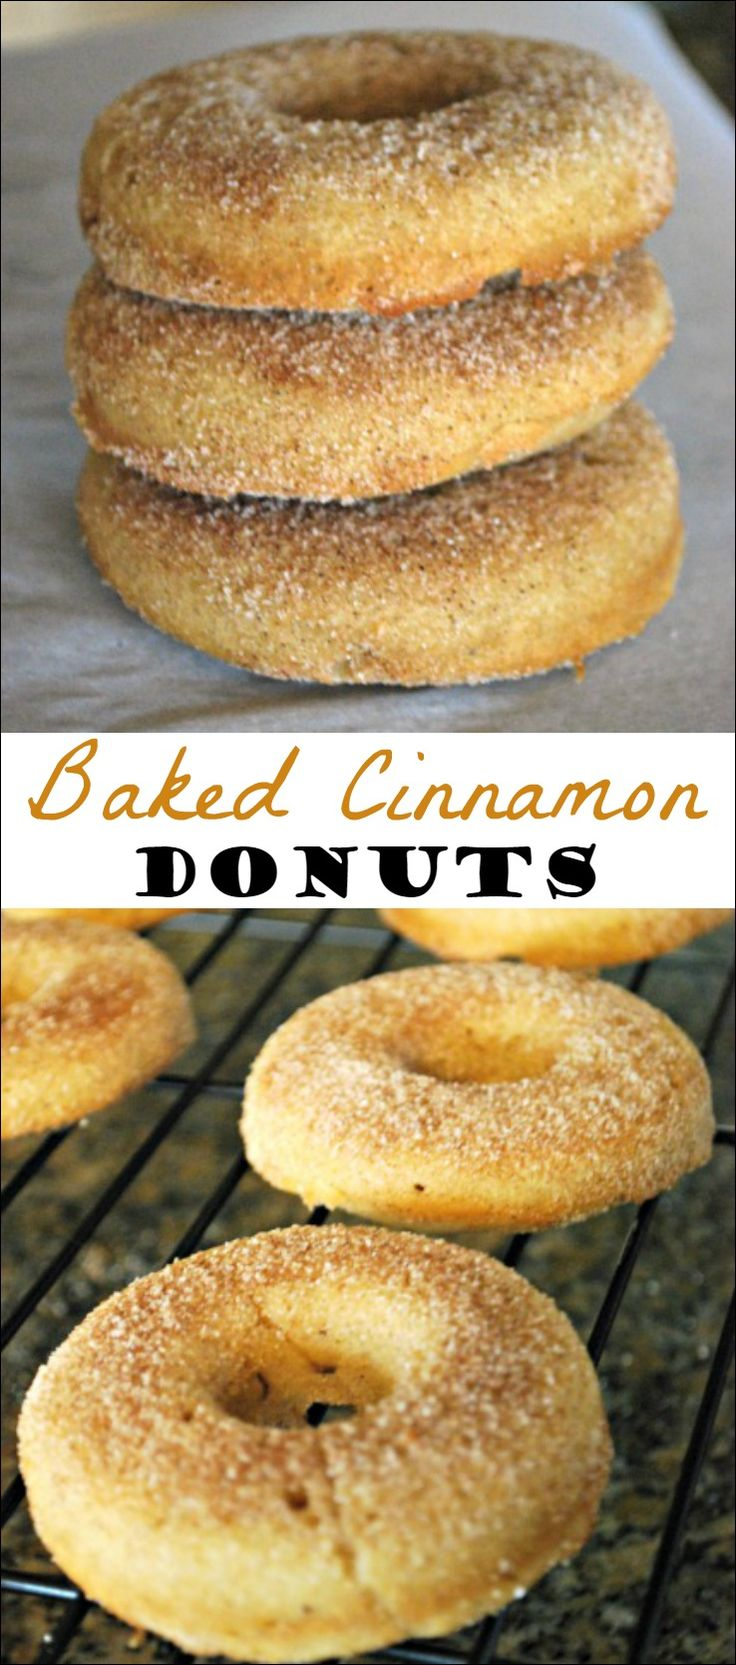 These Baked Cinnamon Donuts are light, fluffy and oh so good! You'll love these warm, right out of the oven! #AD #QuickerPickerUpper